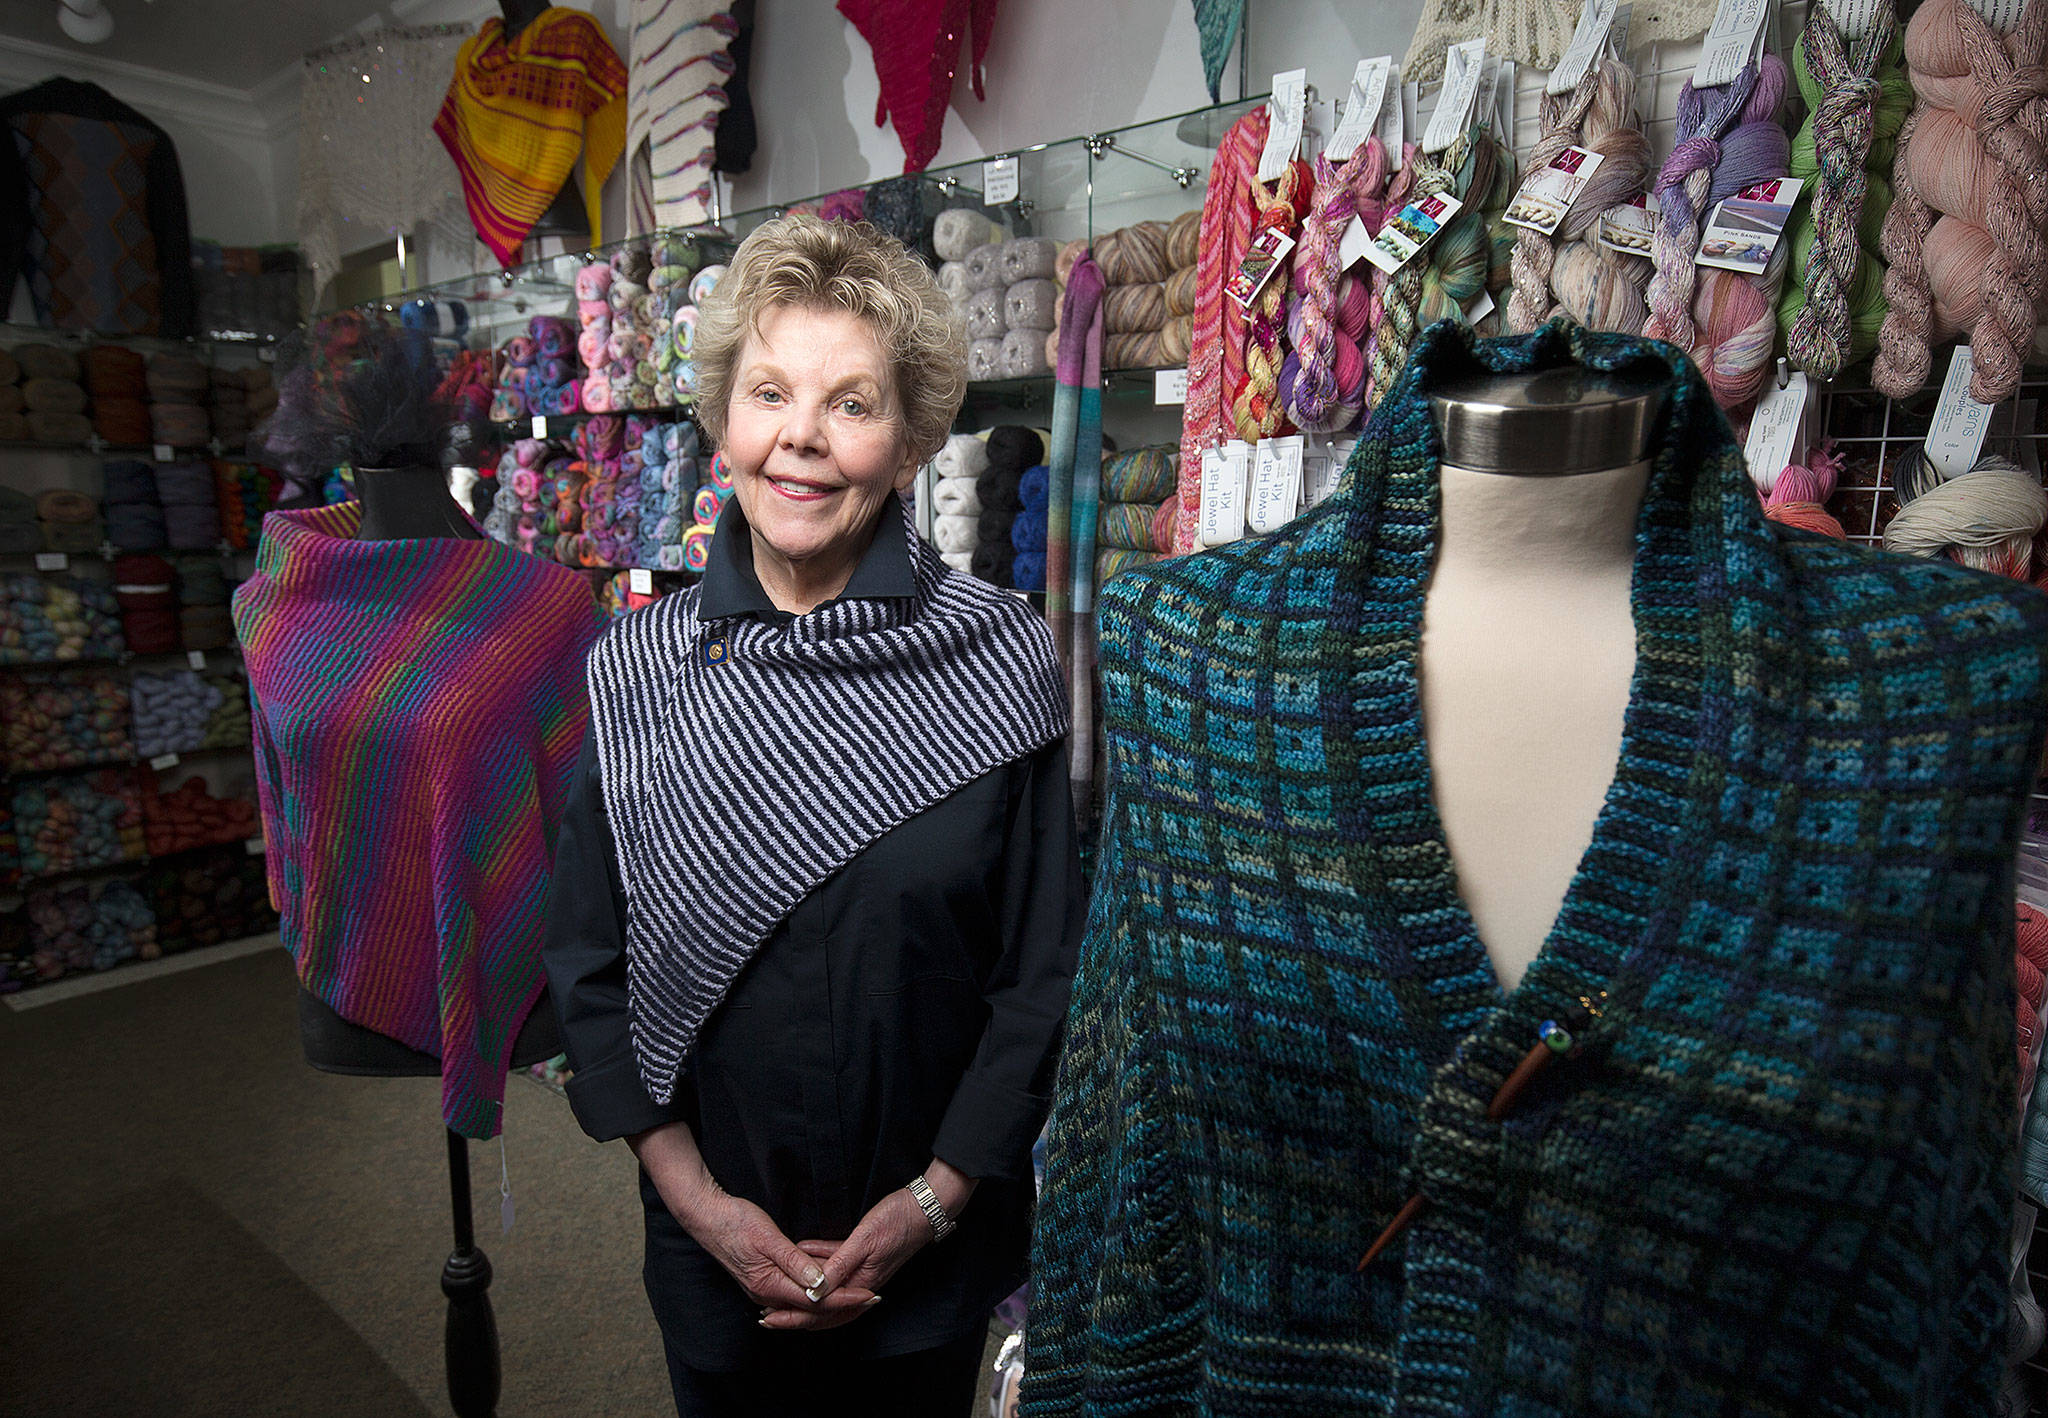 Fontelle Jones, owner of Great Yarns in Everett, has been a member of the Local Yarn Shop Tour since its inception. (Andy Bronson / The Herald)